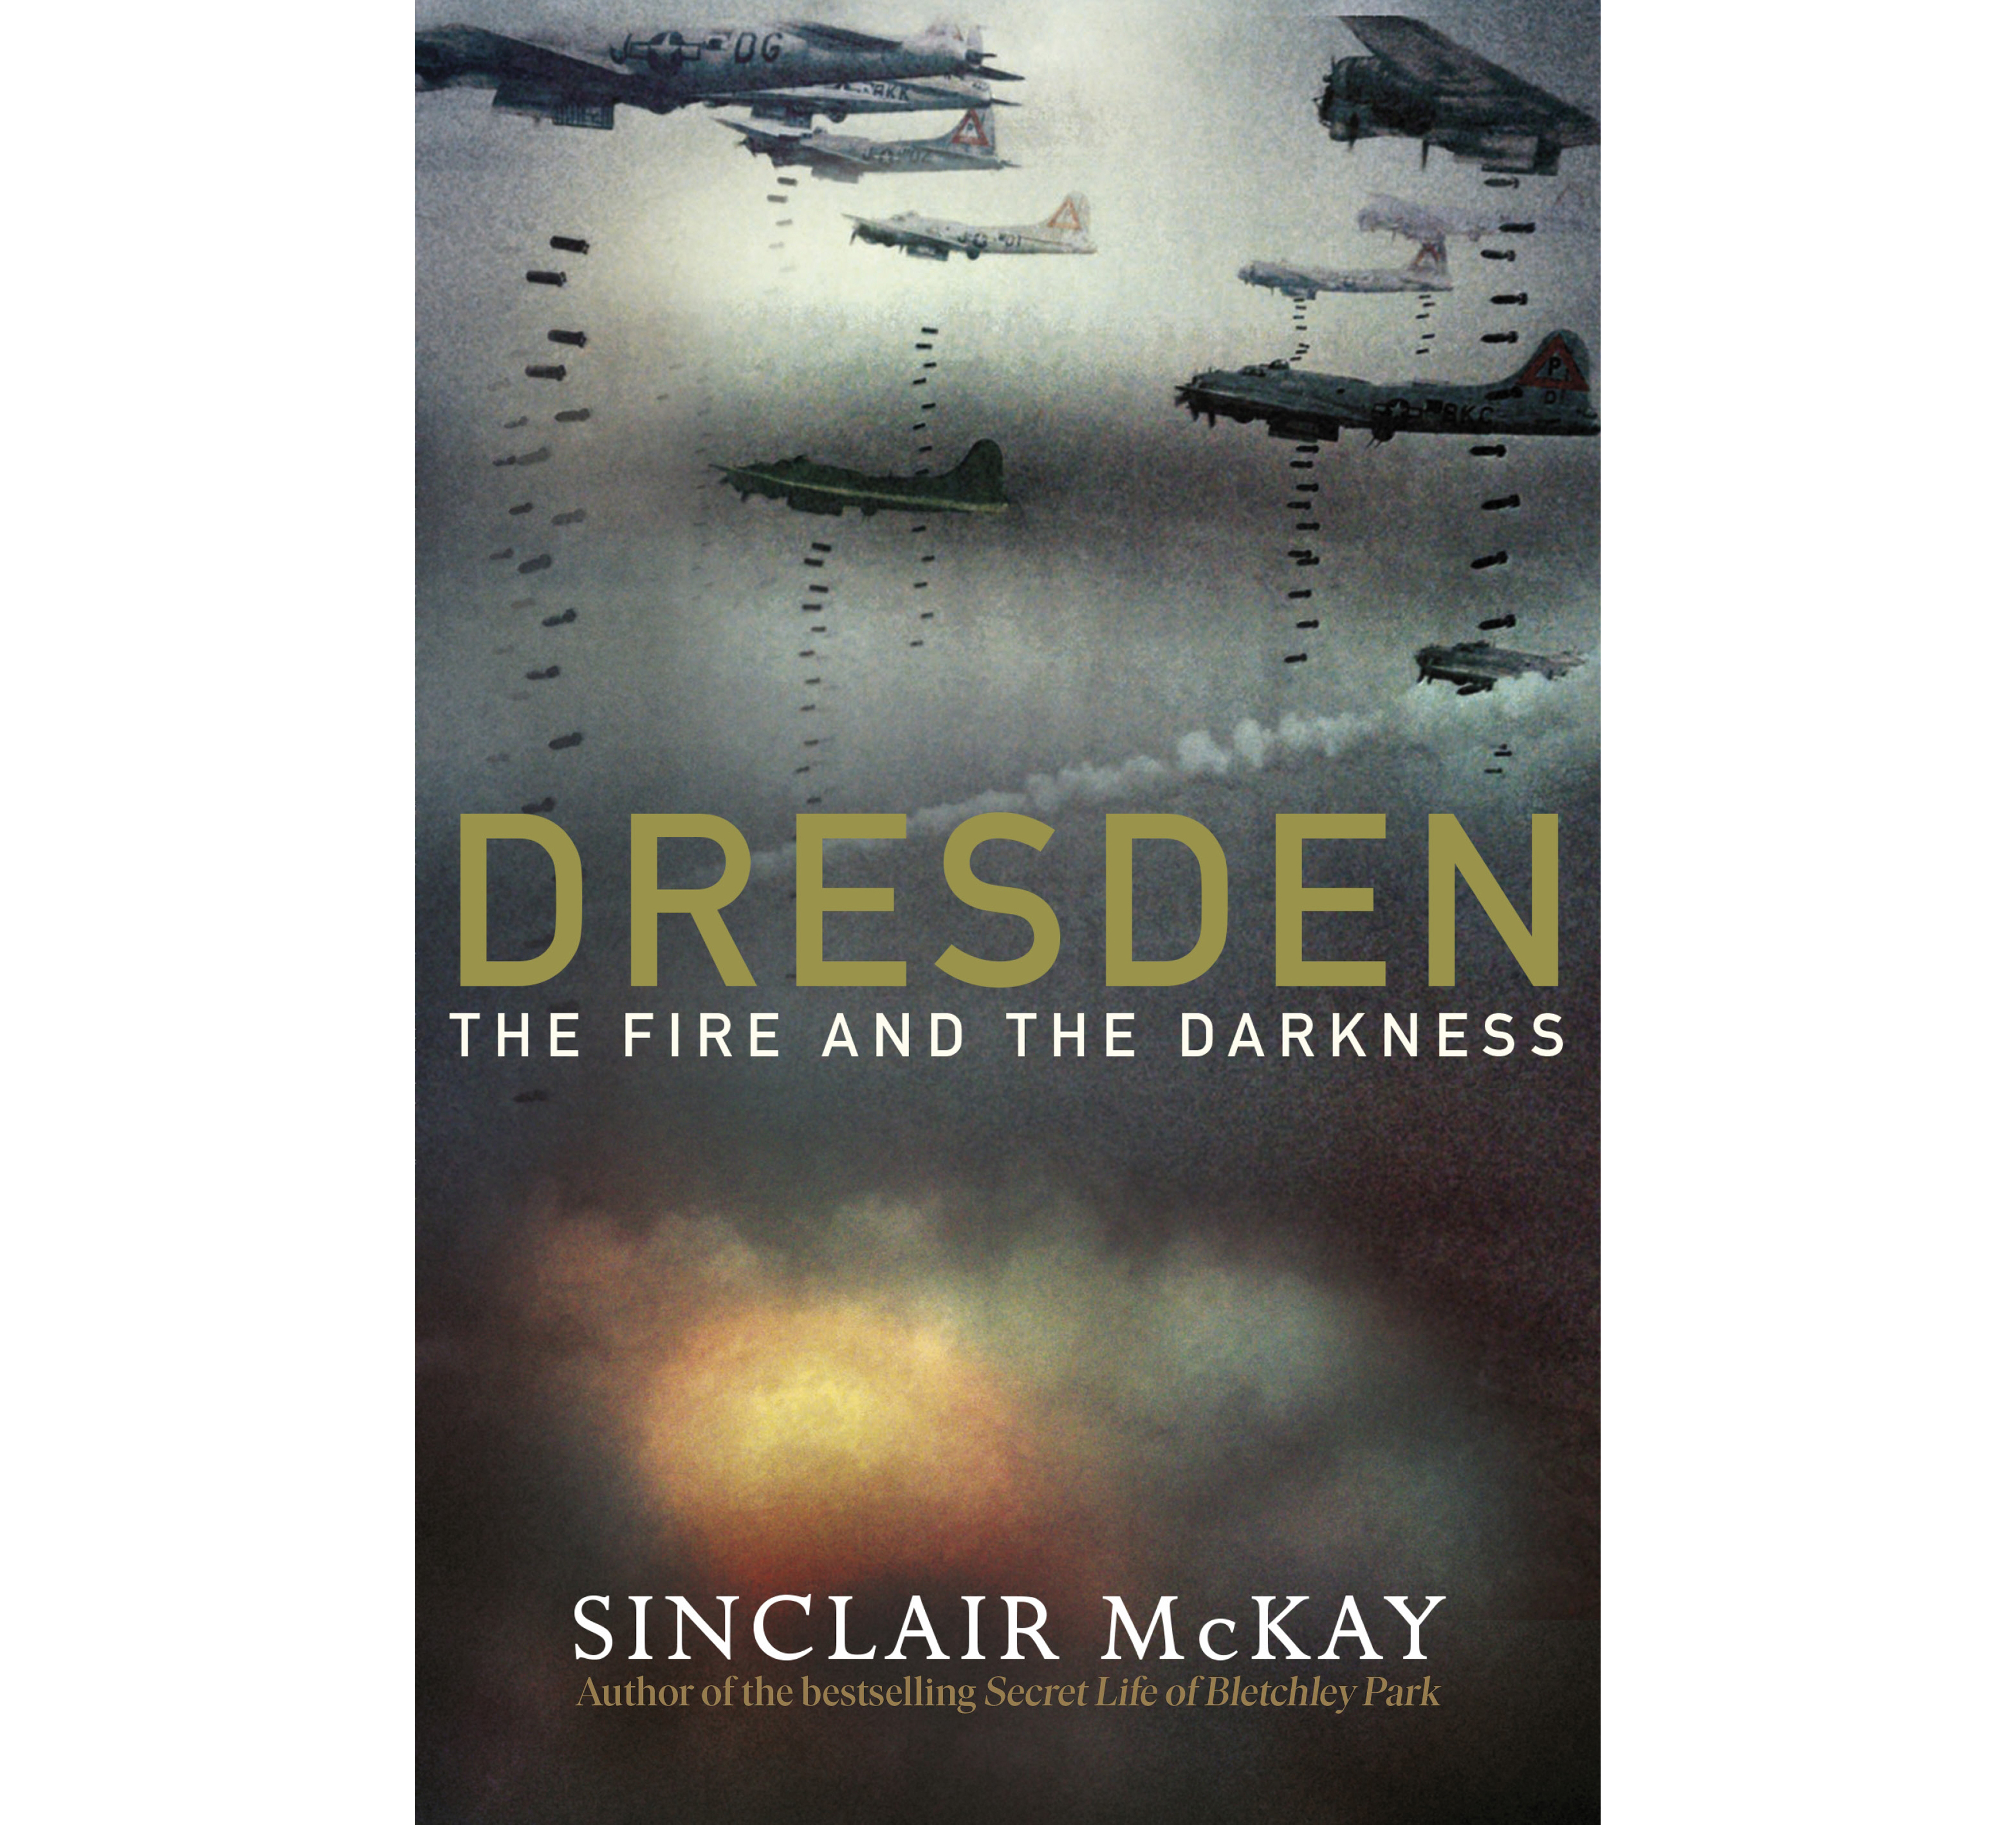 Dresden: The Fire And The Darkness by Sinclair McKay (Viking/PA)